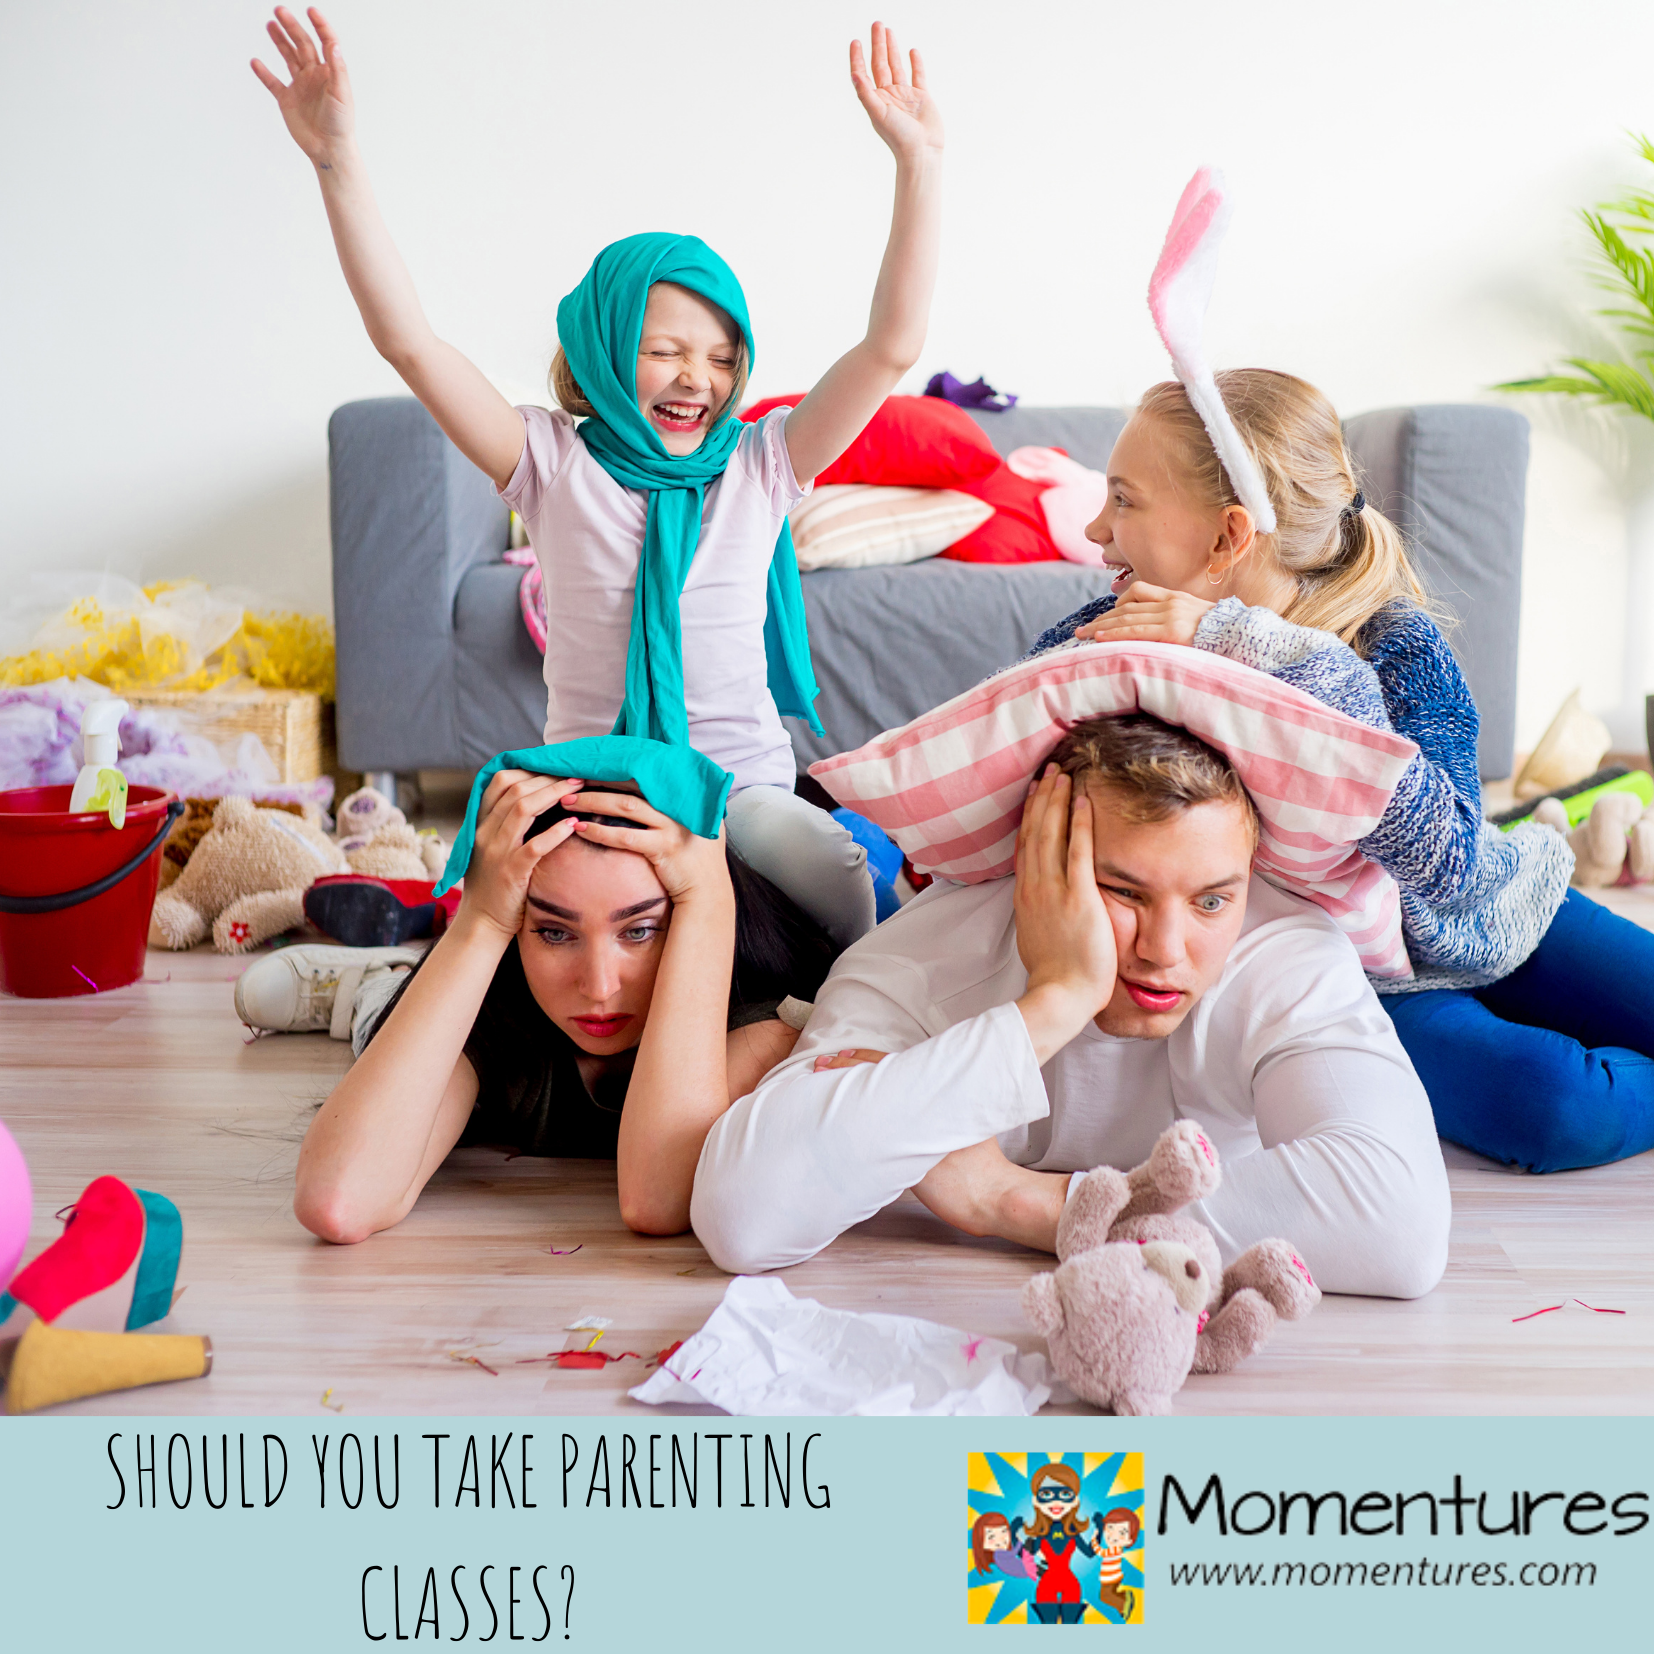 Should You Take Parenting Classes?